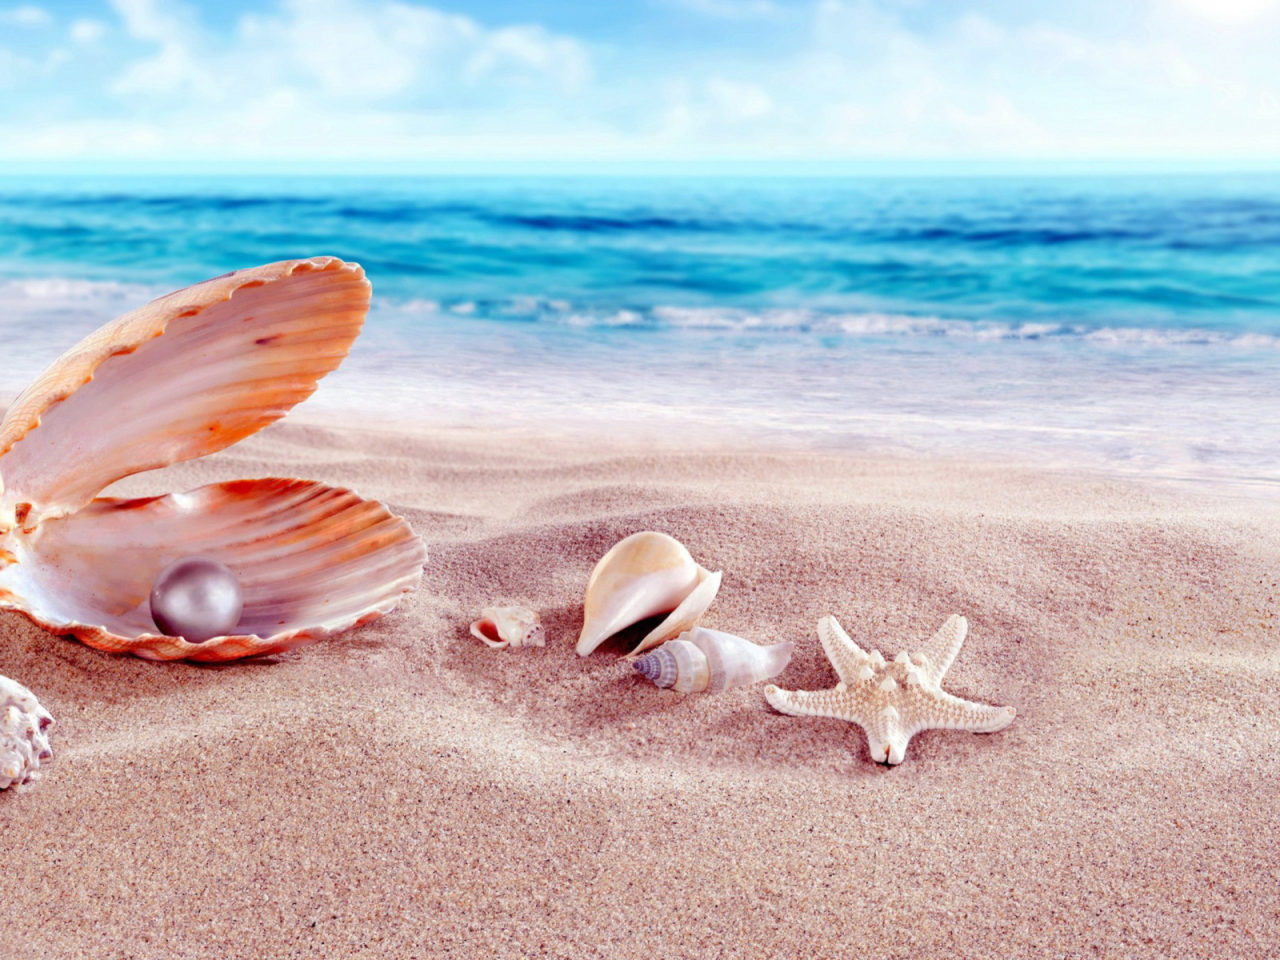 3d Animated Wallpaper For Pc Desktop Free Download Windows 7 Sea Shells With Beads Sandy Beach Hd Wallpapers 1920x1200